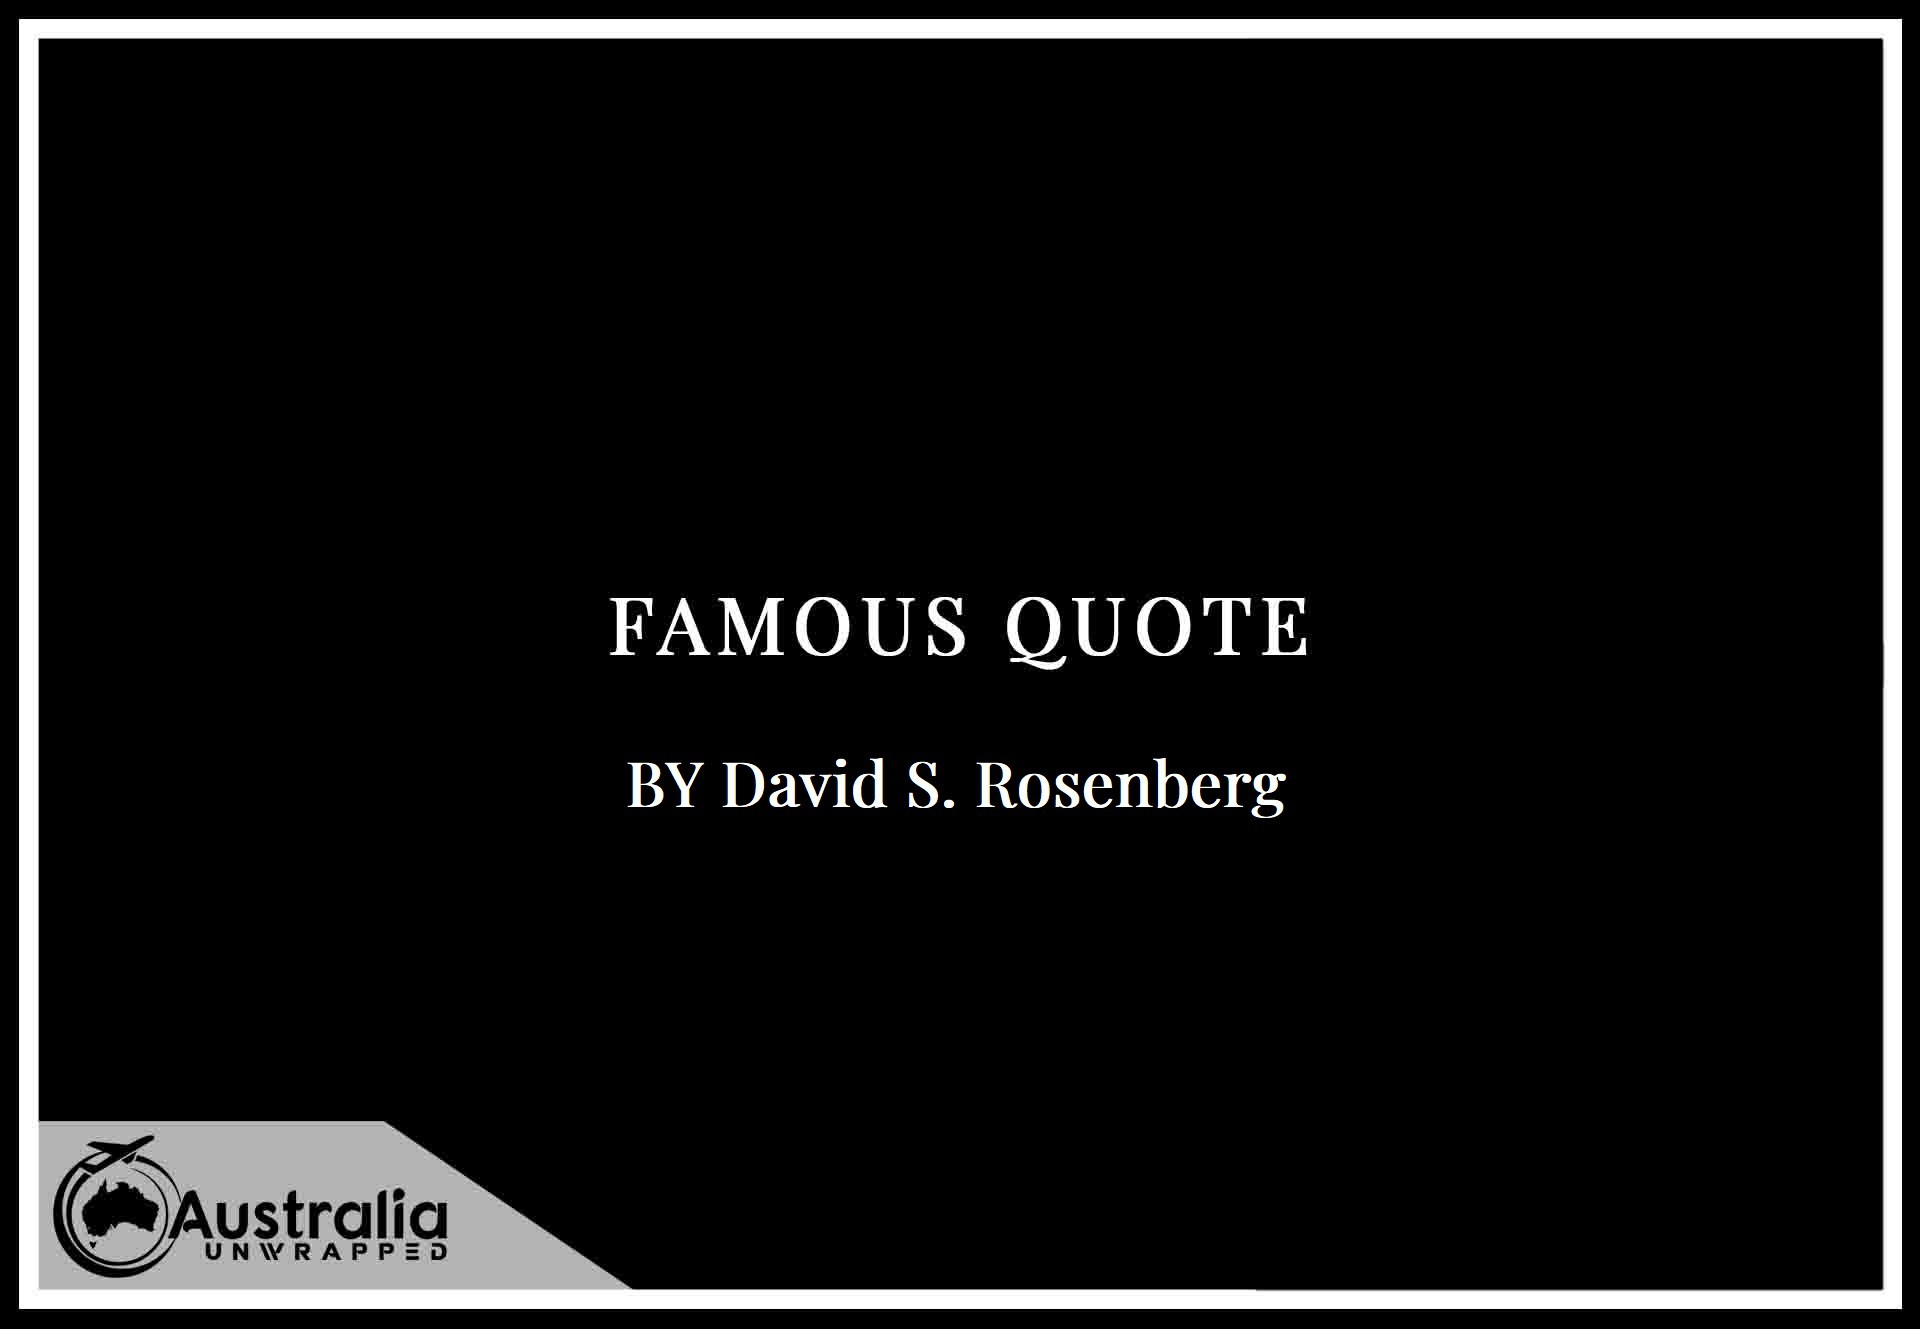 Top 1 Famous Quotes by Author David S. Rosenberg